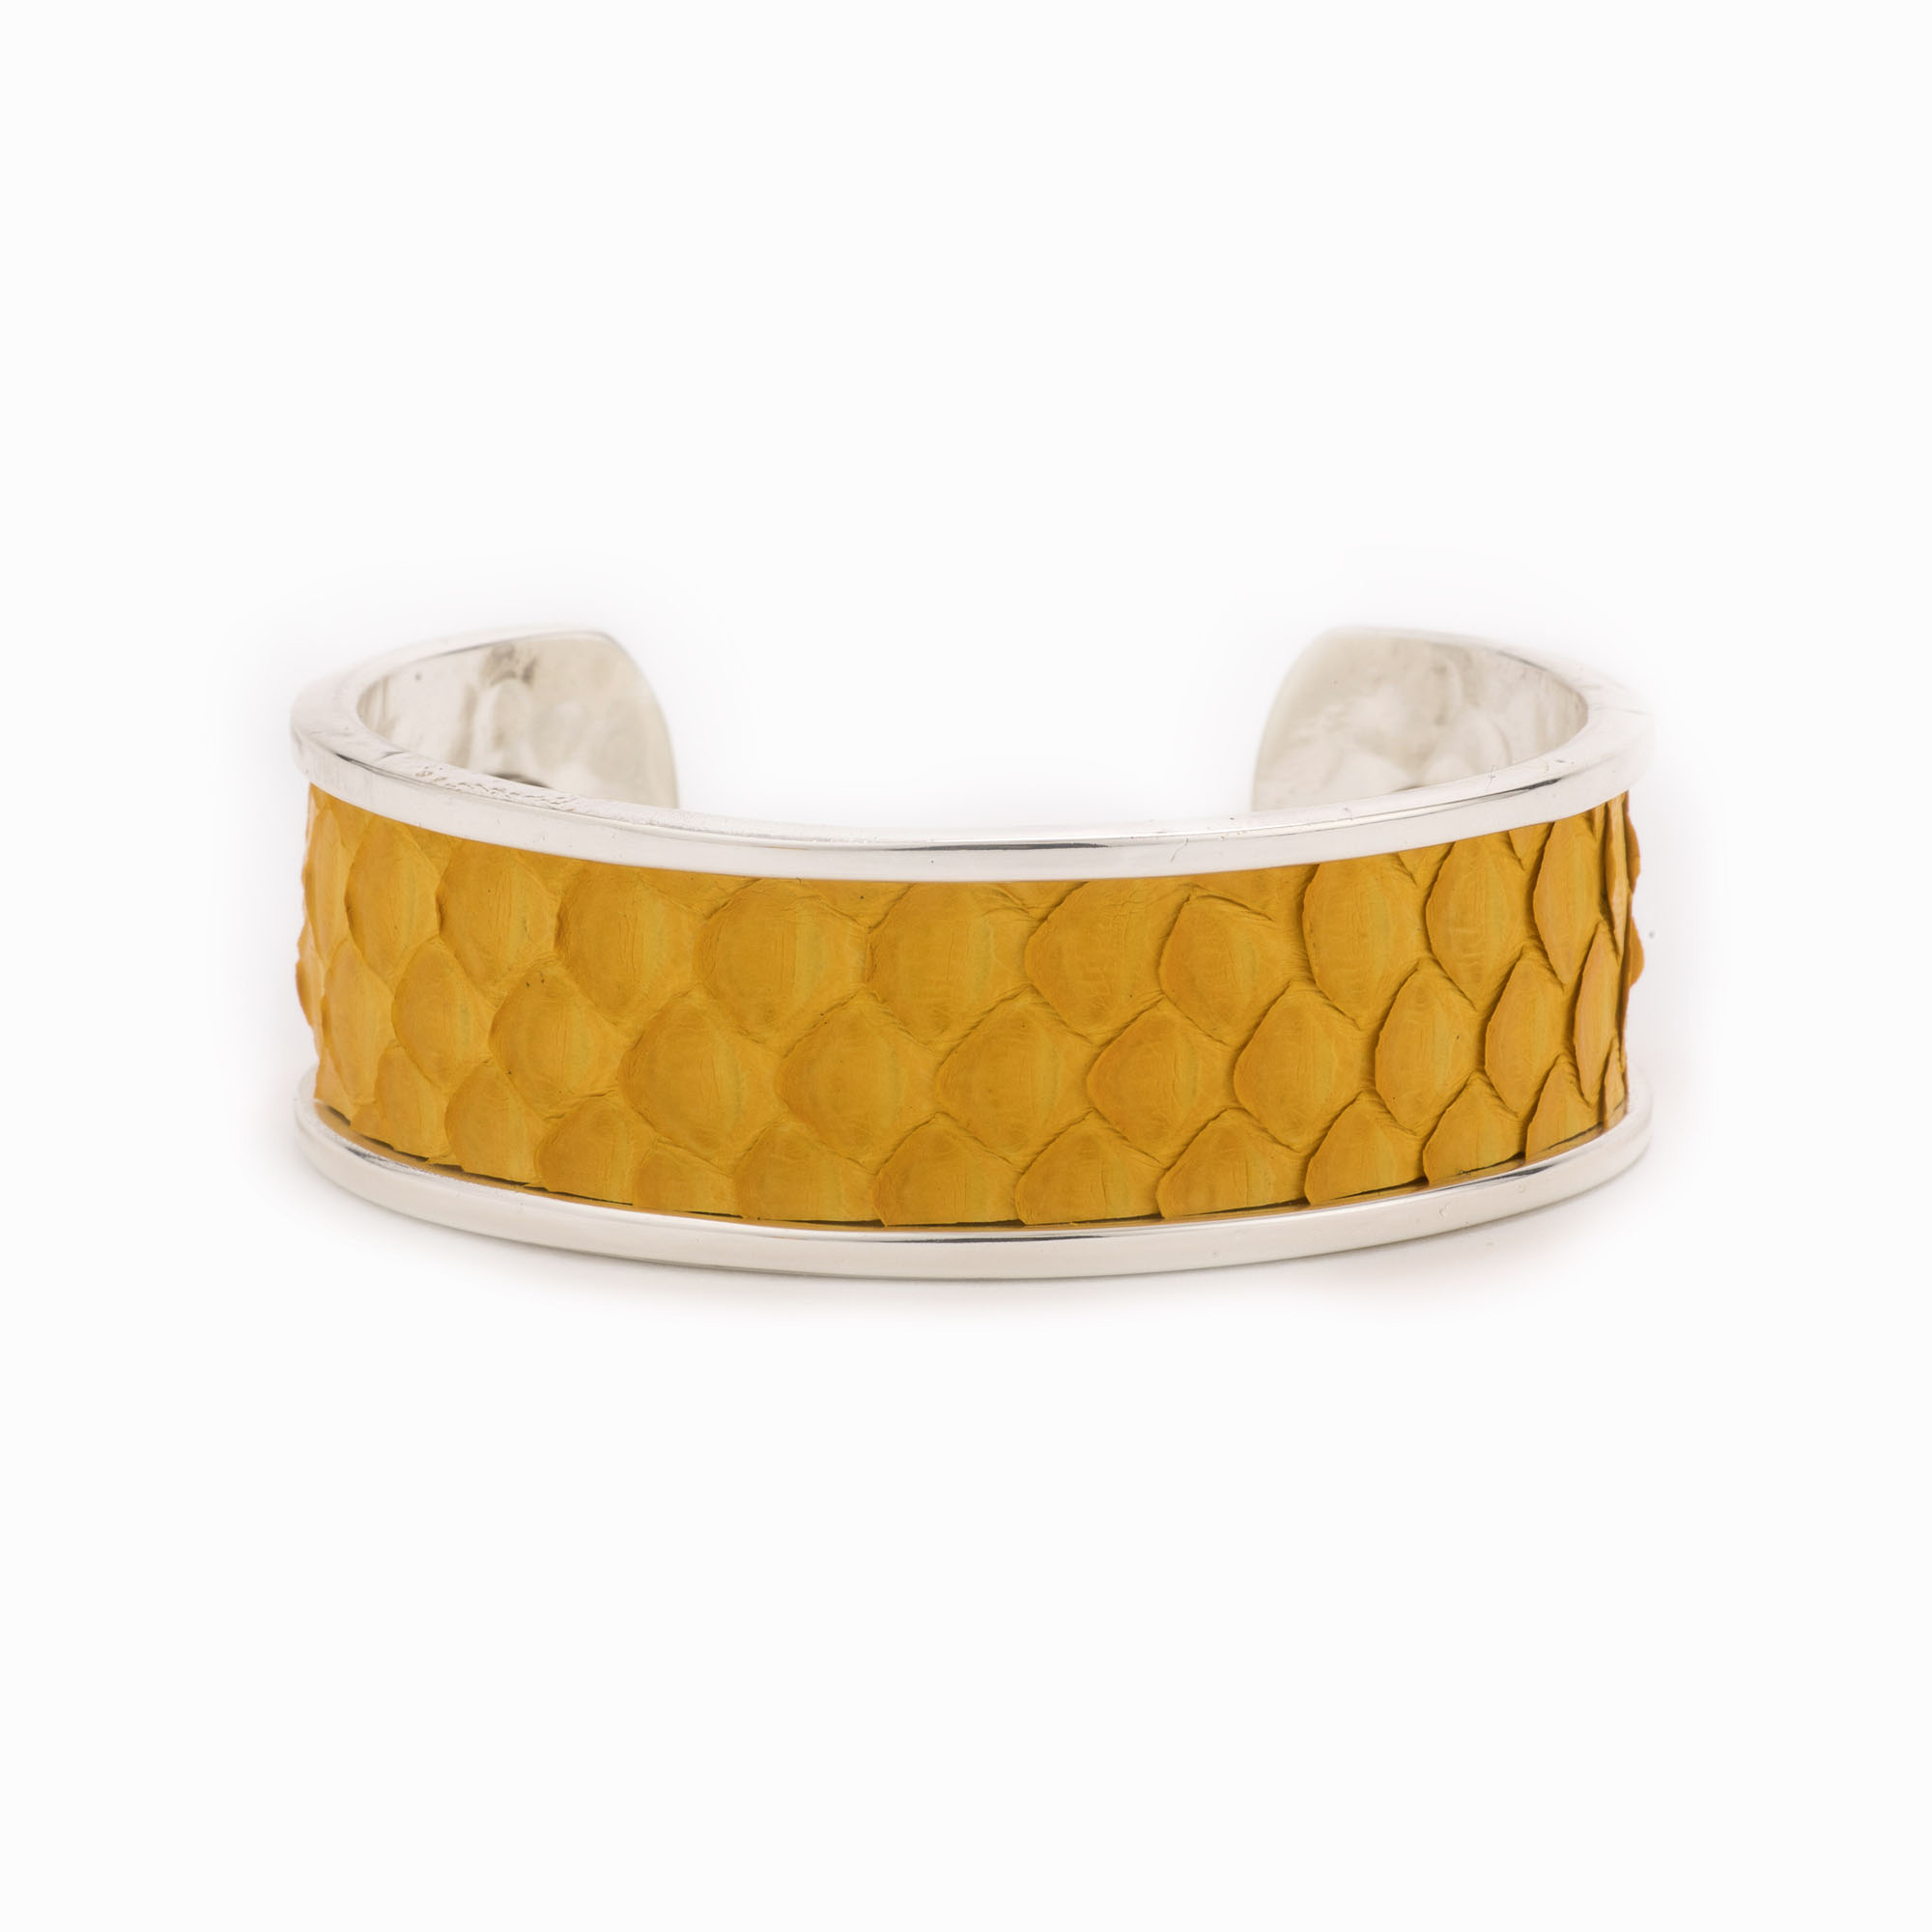 A medium silver cuff with mustard colored python skin pattern.